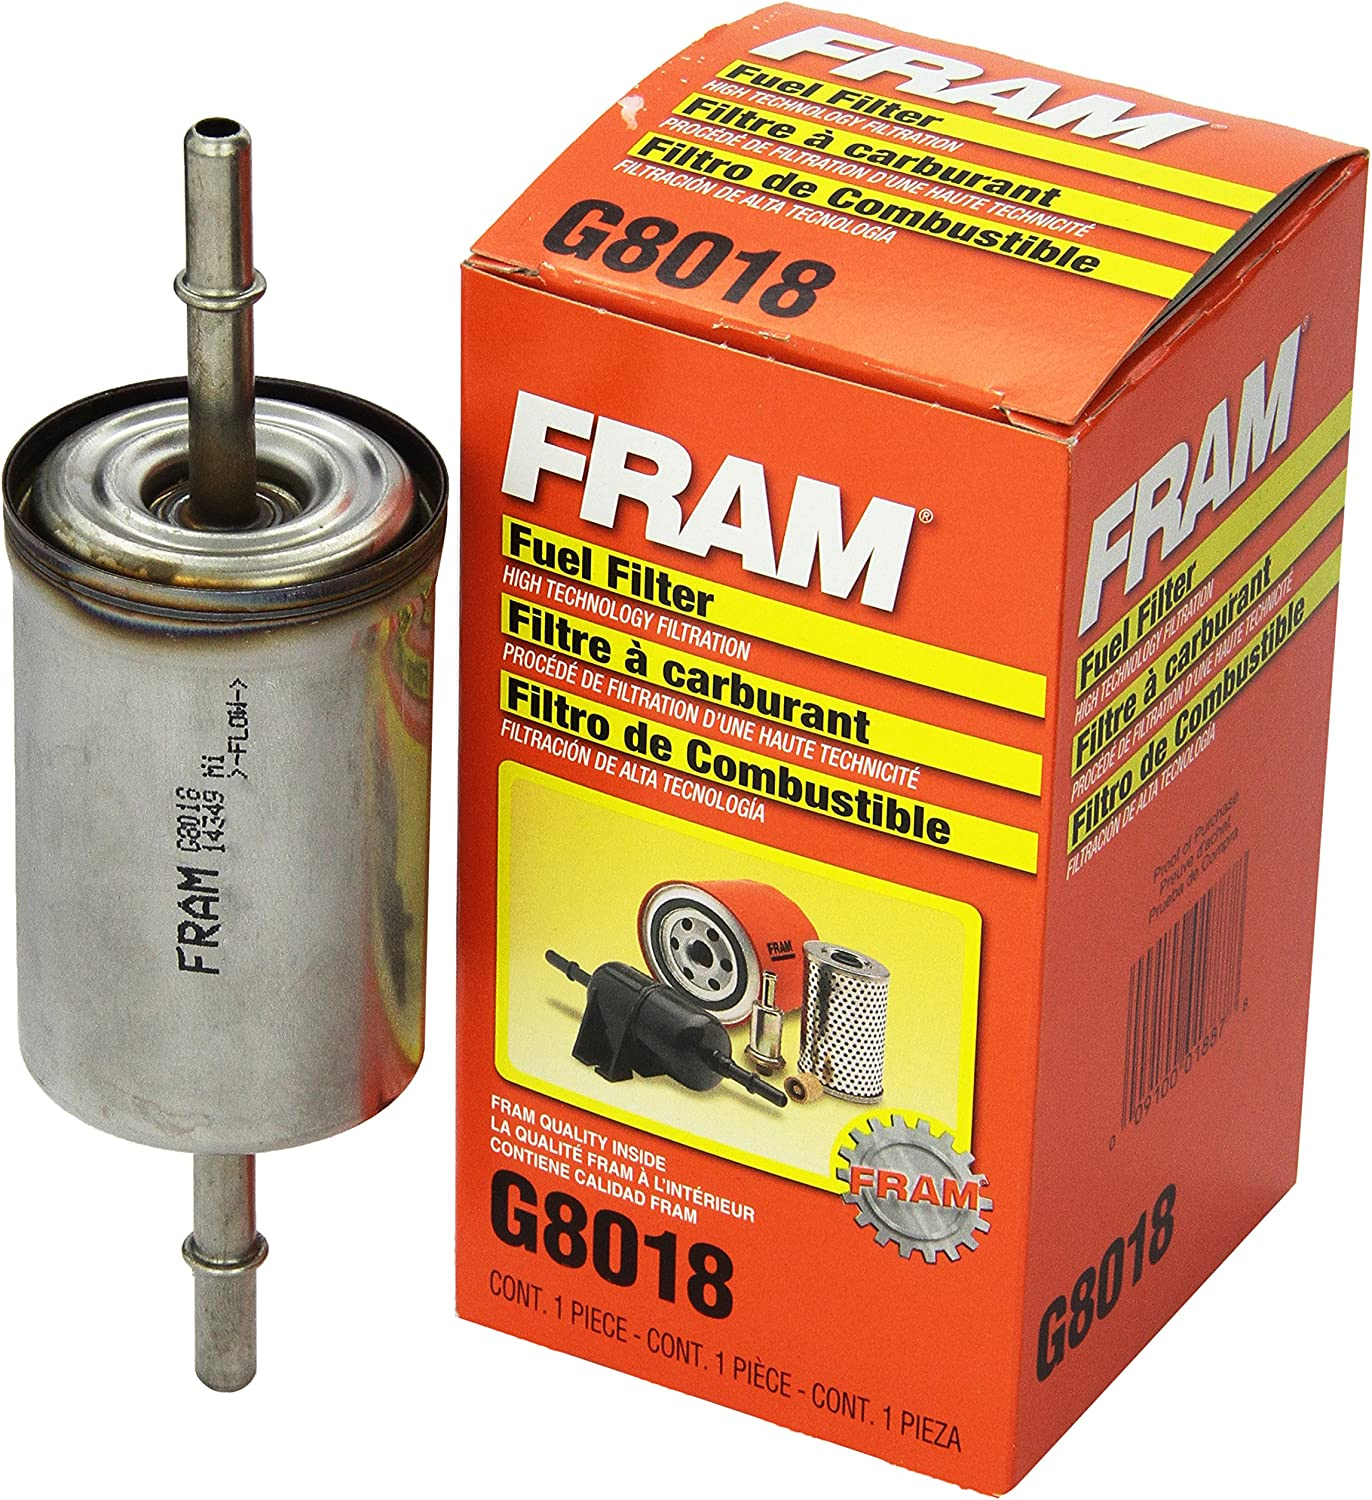 Amazon.com: FRAM G8018 In-Line Fuel Filter: AutomotiveAmazon.com